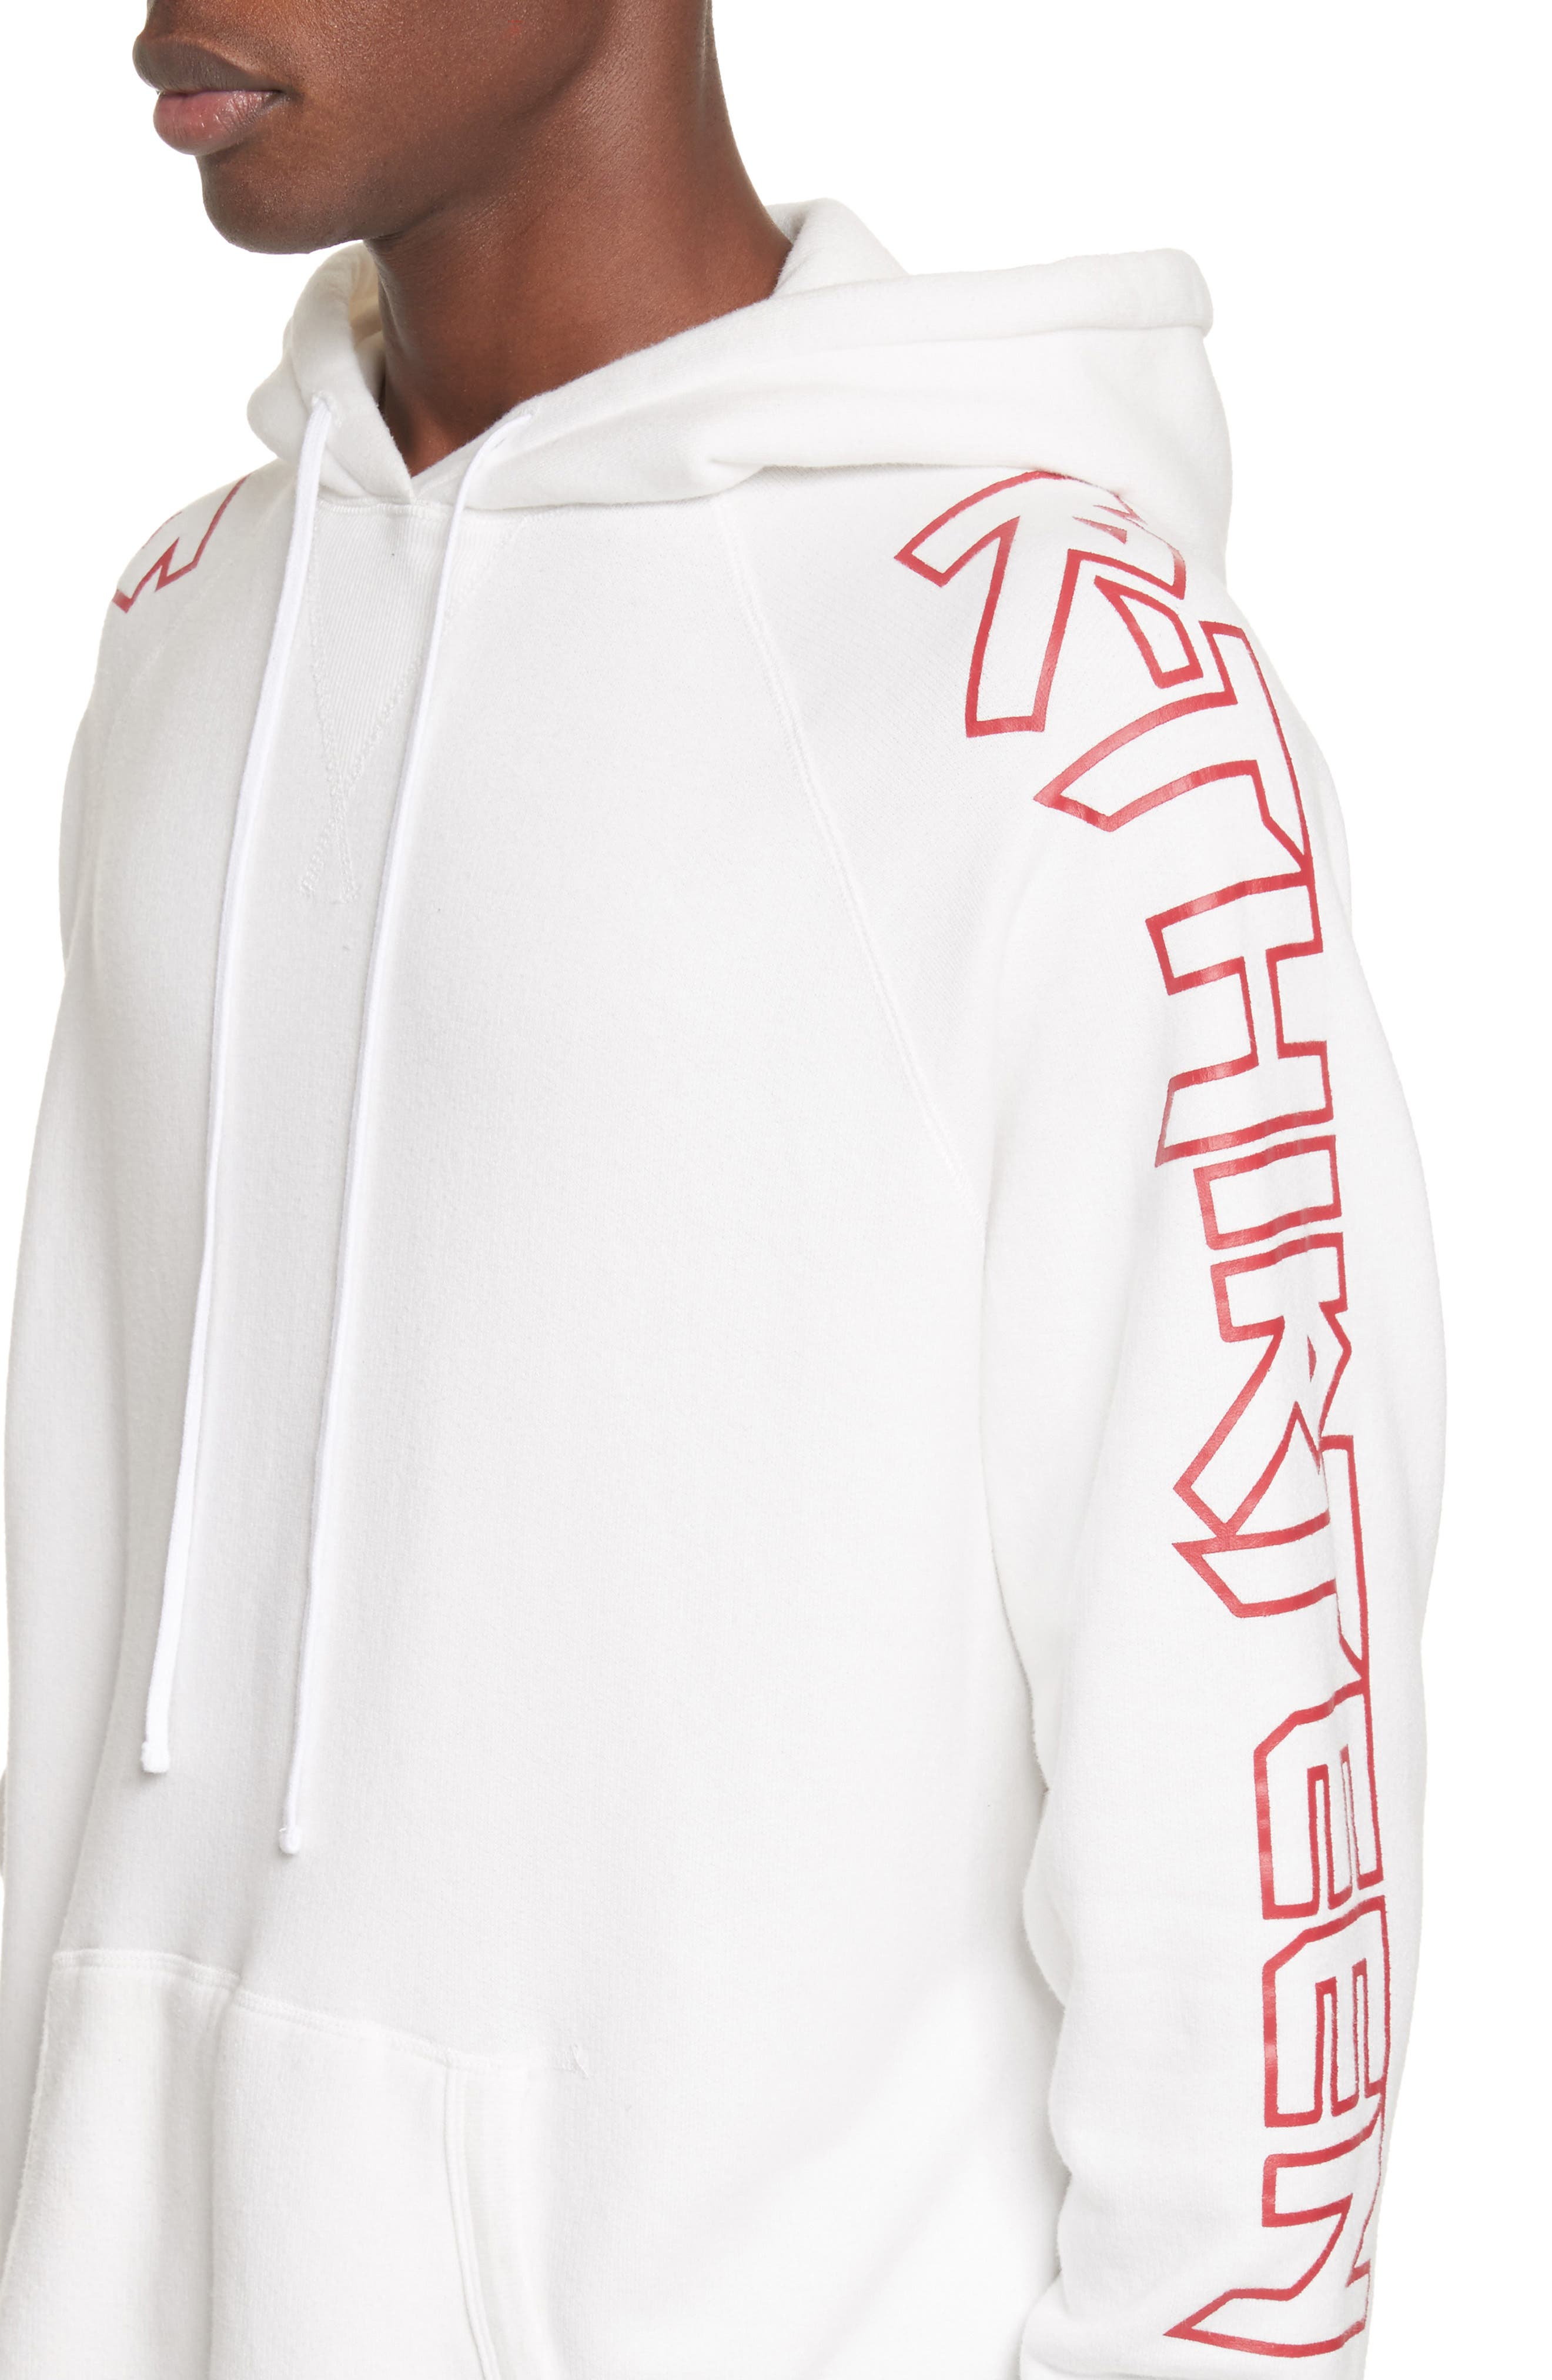 rThirteen Graphic Hoodie,                             Alternate thumbnail 4, color,                             100